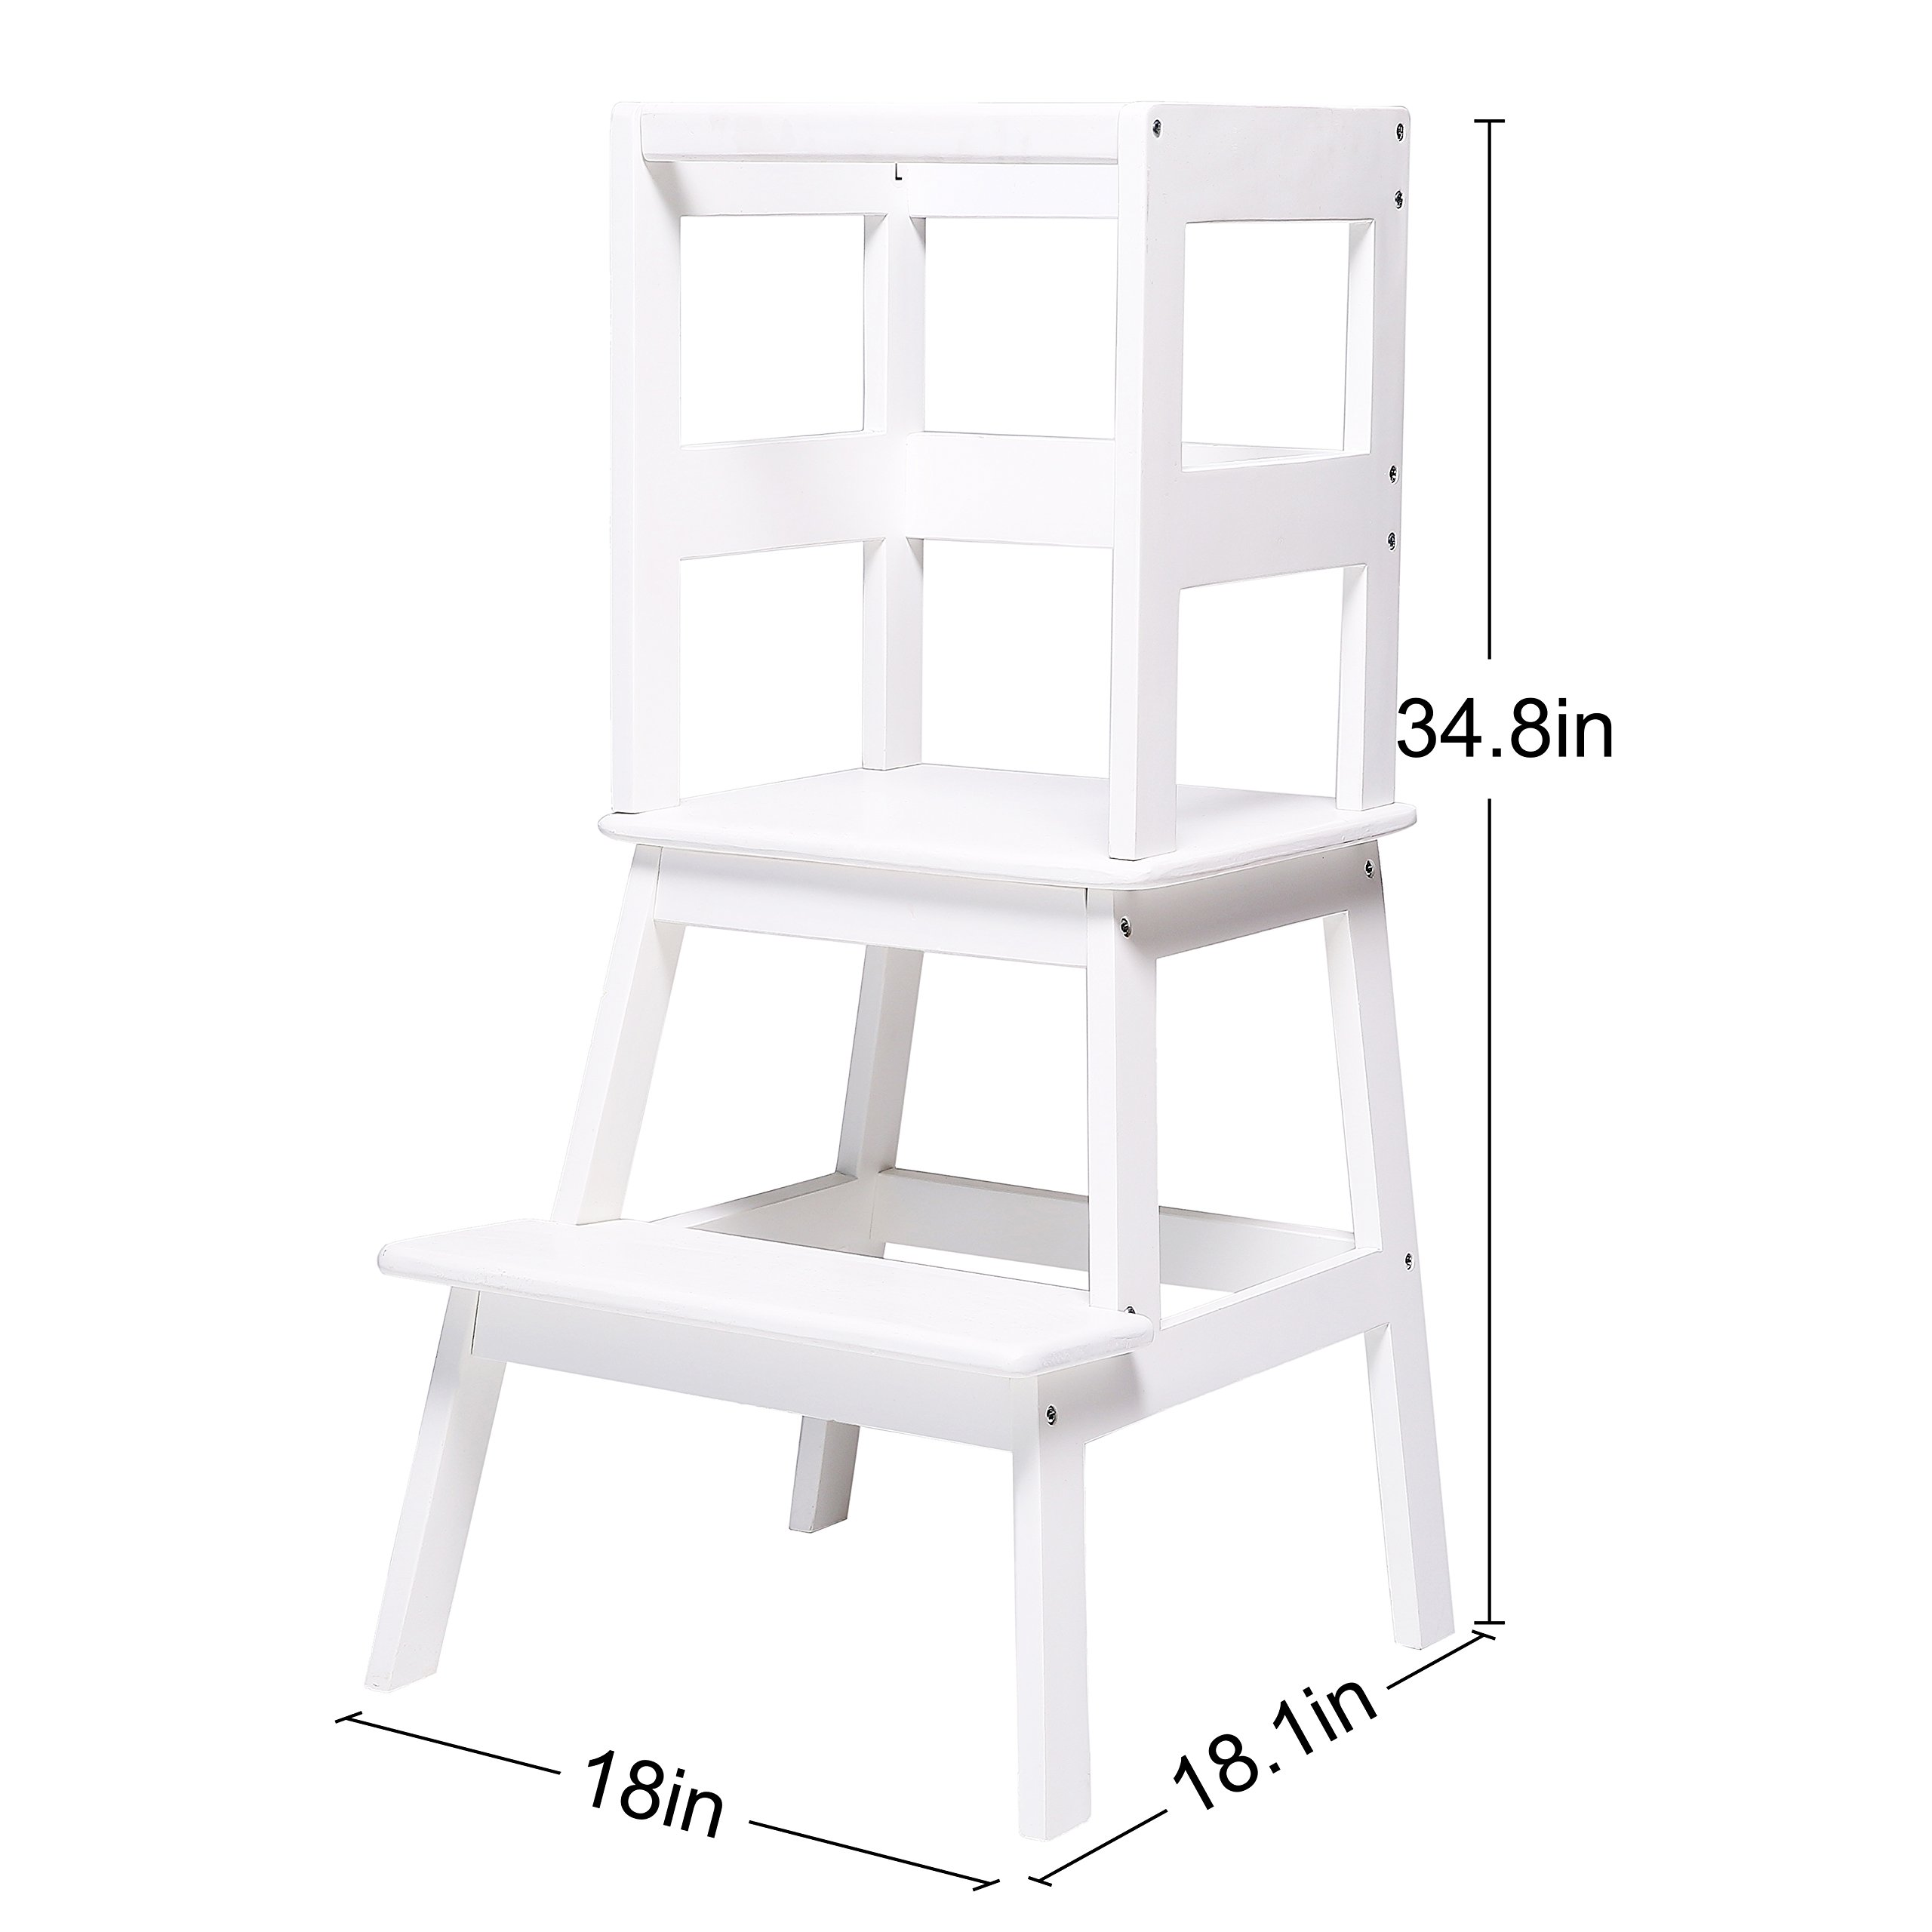 bekv step ikea this but m already got today for stool toddlers pin i pinned it